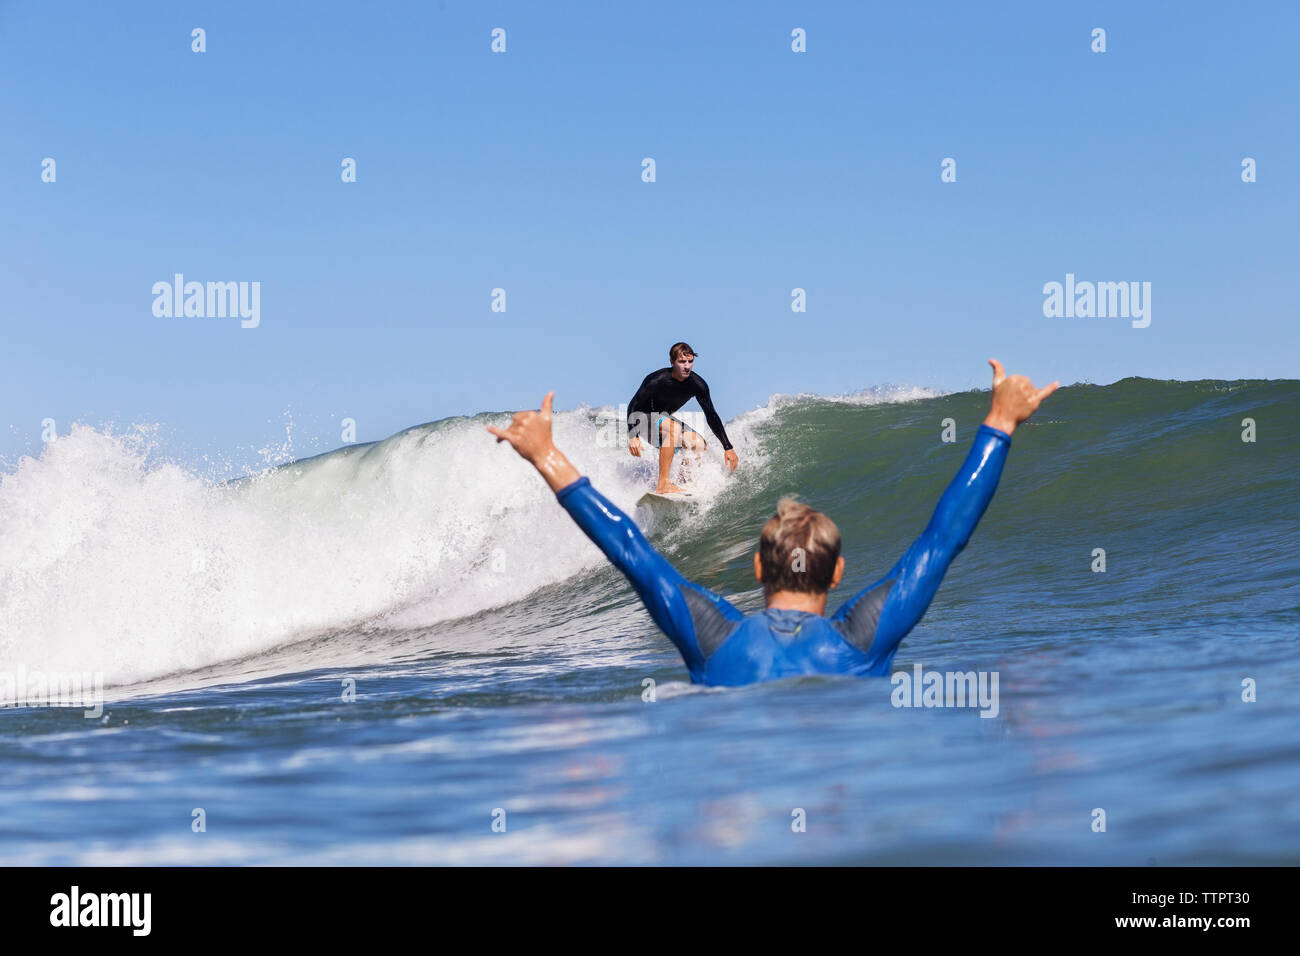 Man cheering while looking at friend surfing on sea against clear blue sky - Stock Image